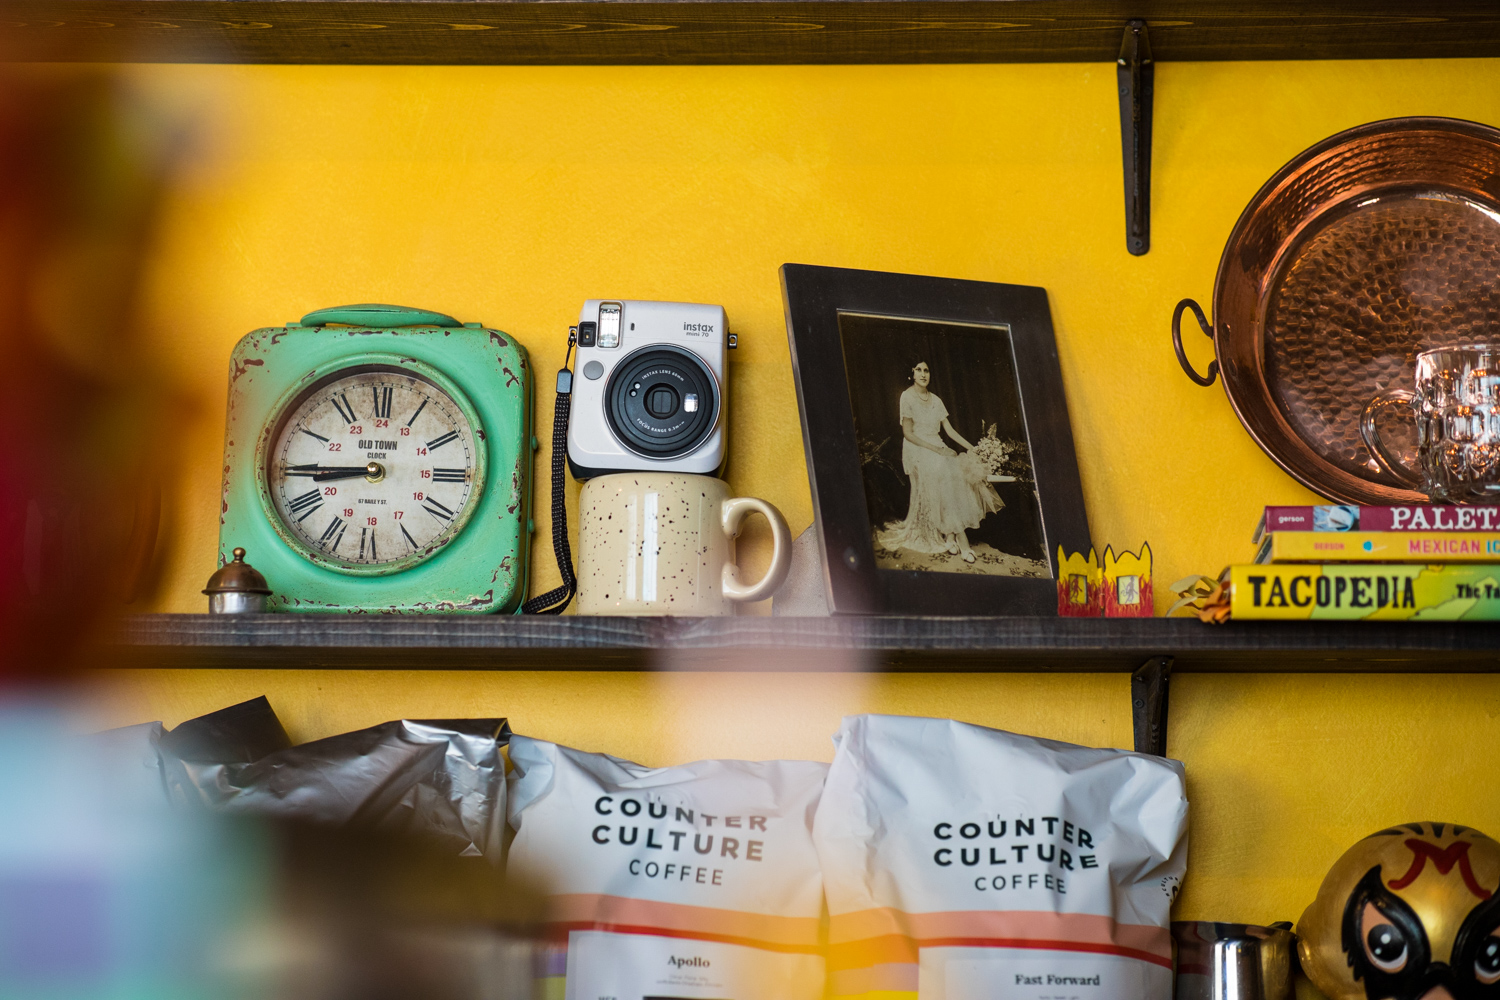 Detail from items on the shelves at El Tesoro.